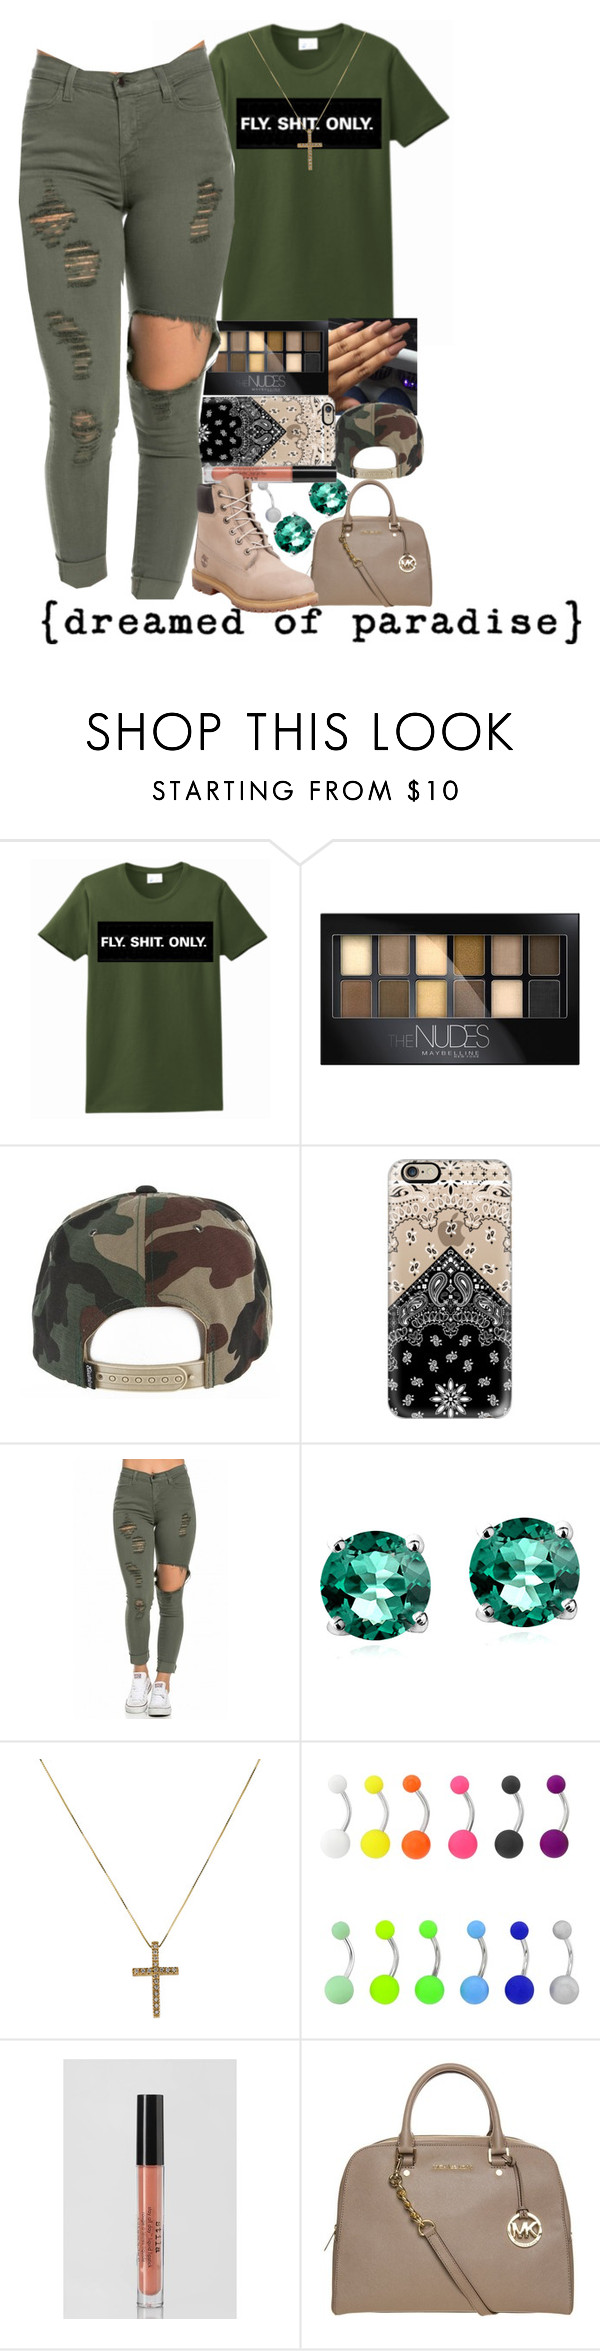 """""""its going down in the dms"""" by wma0411 ❤ liked on Polyvore featuring Maybelline, Casetify, Glitzy Rocks, Stila, MICHAEL Michael Kors, Timberland, women's clothing, women, female and woman"""